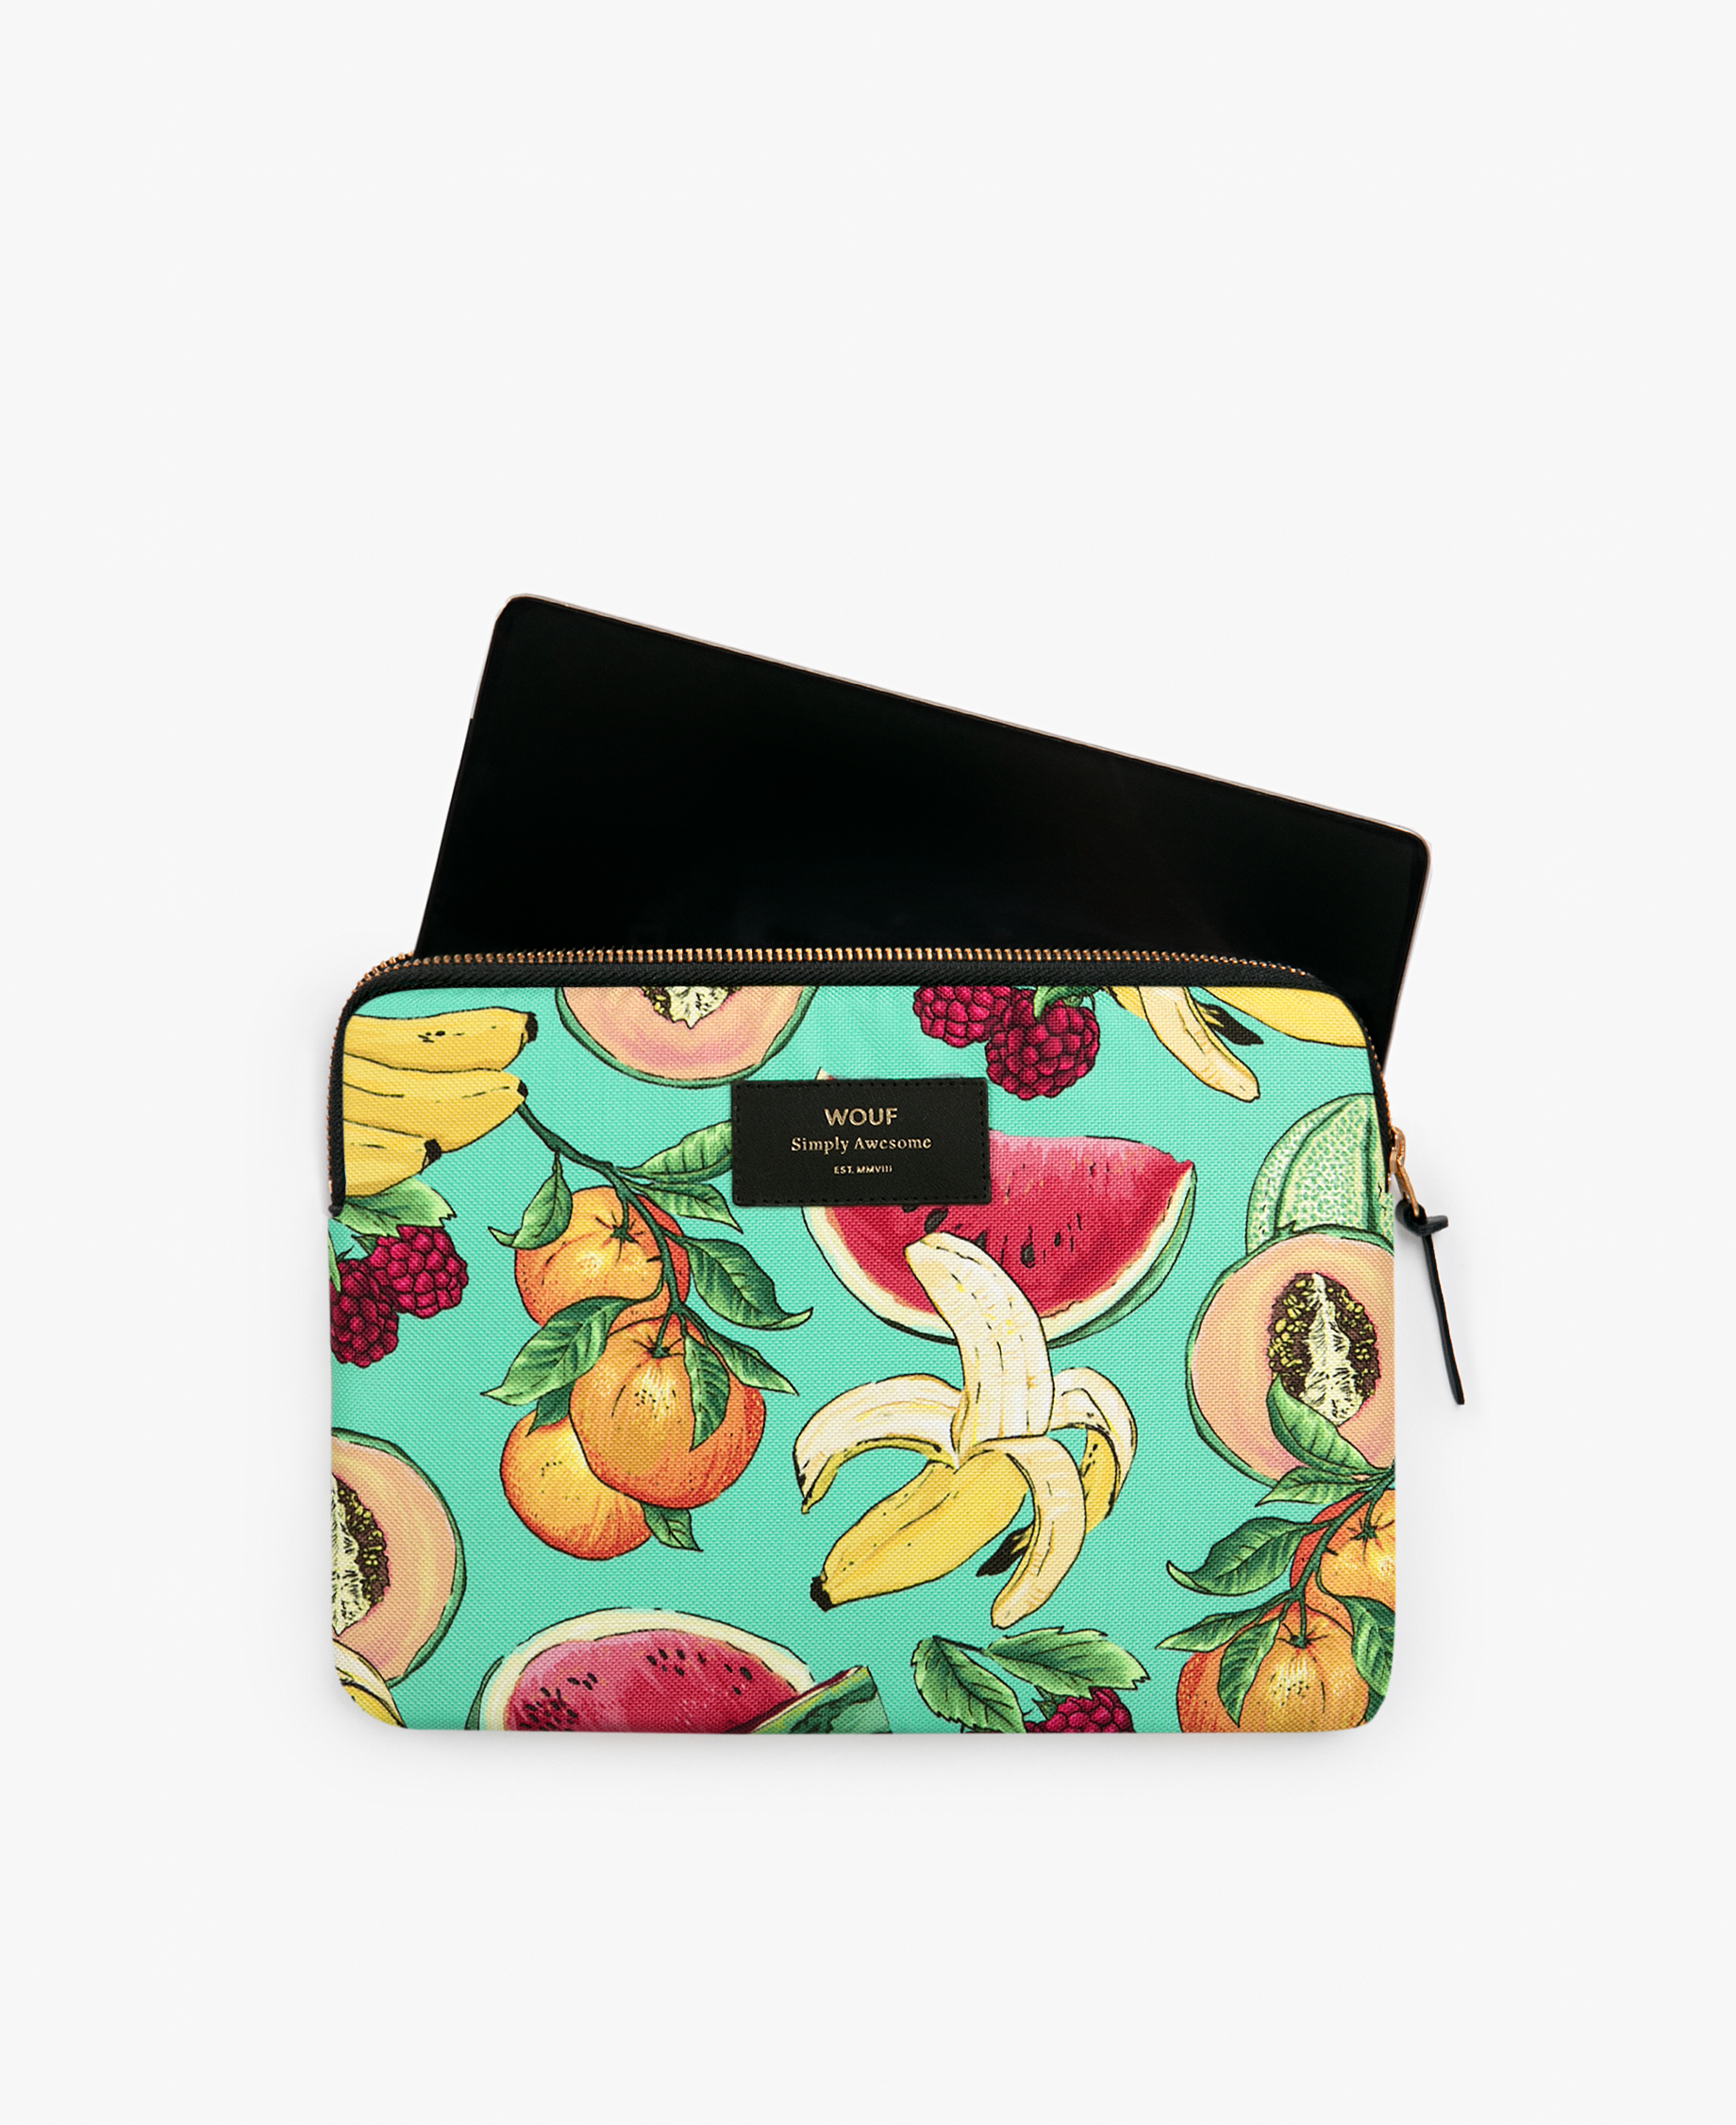 ipad case for young woman